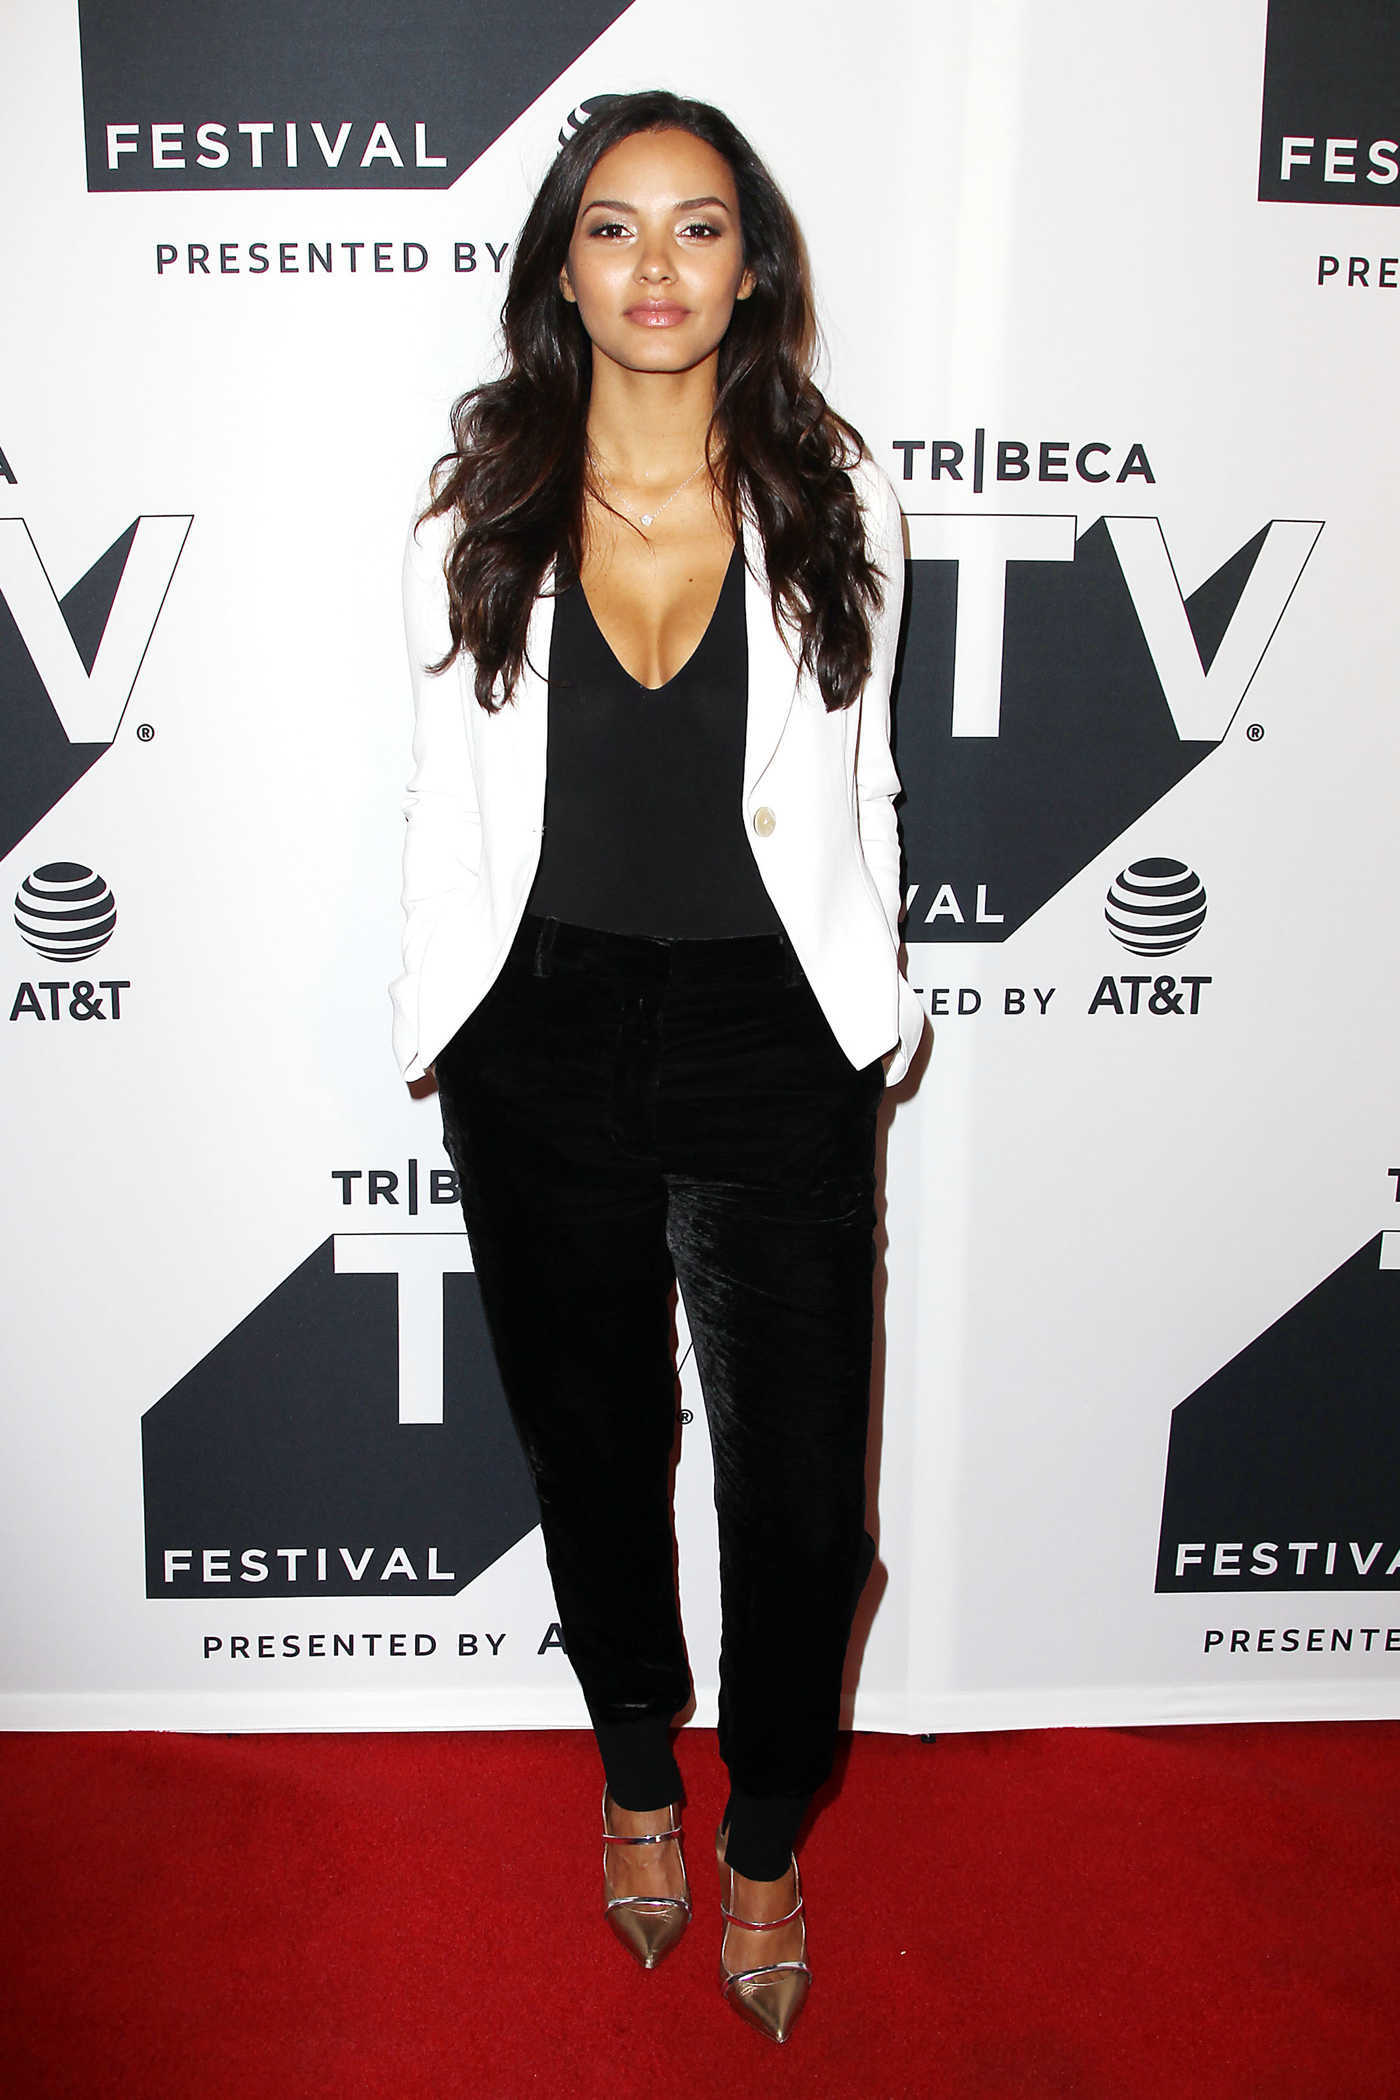 Jessica Lucas at the Gotham Sneak Peek During Tribeca TV Festival in NYC 09/23/2017